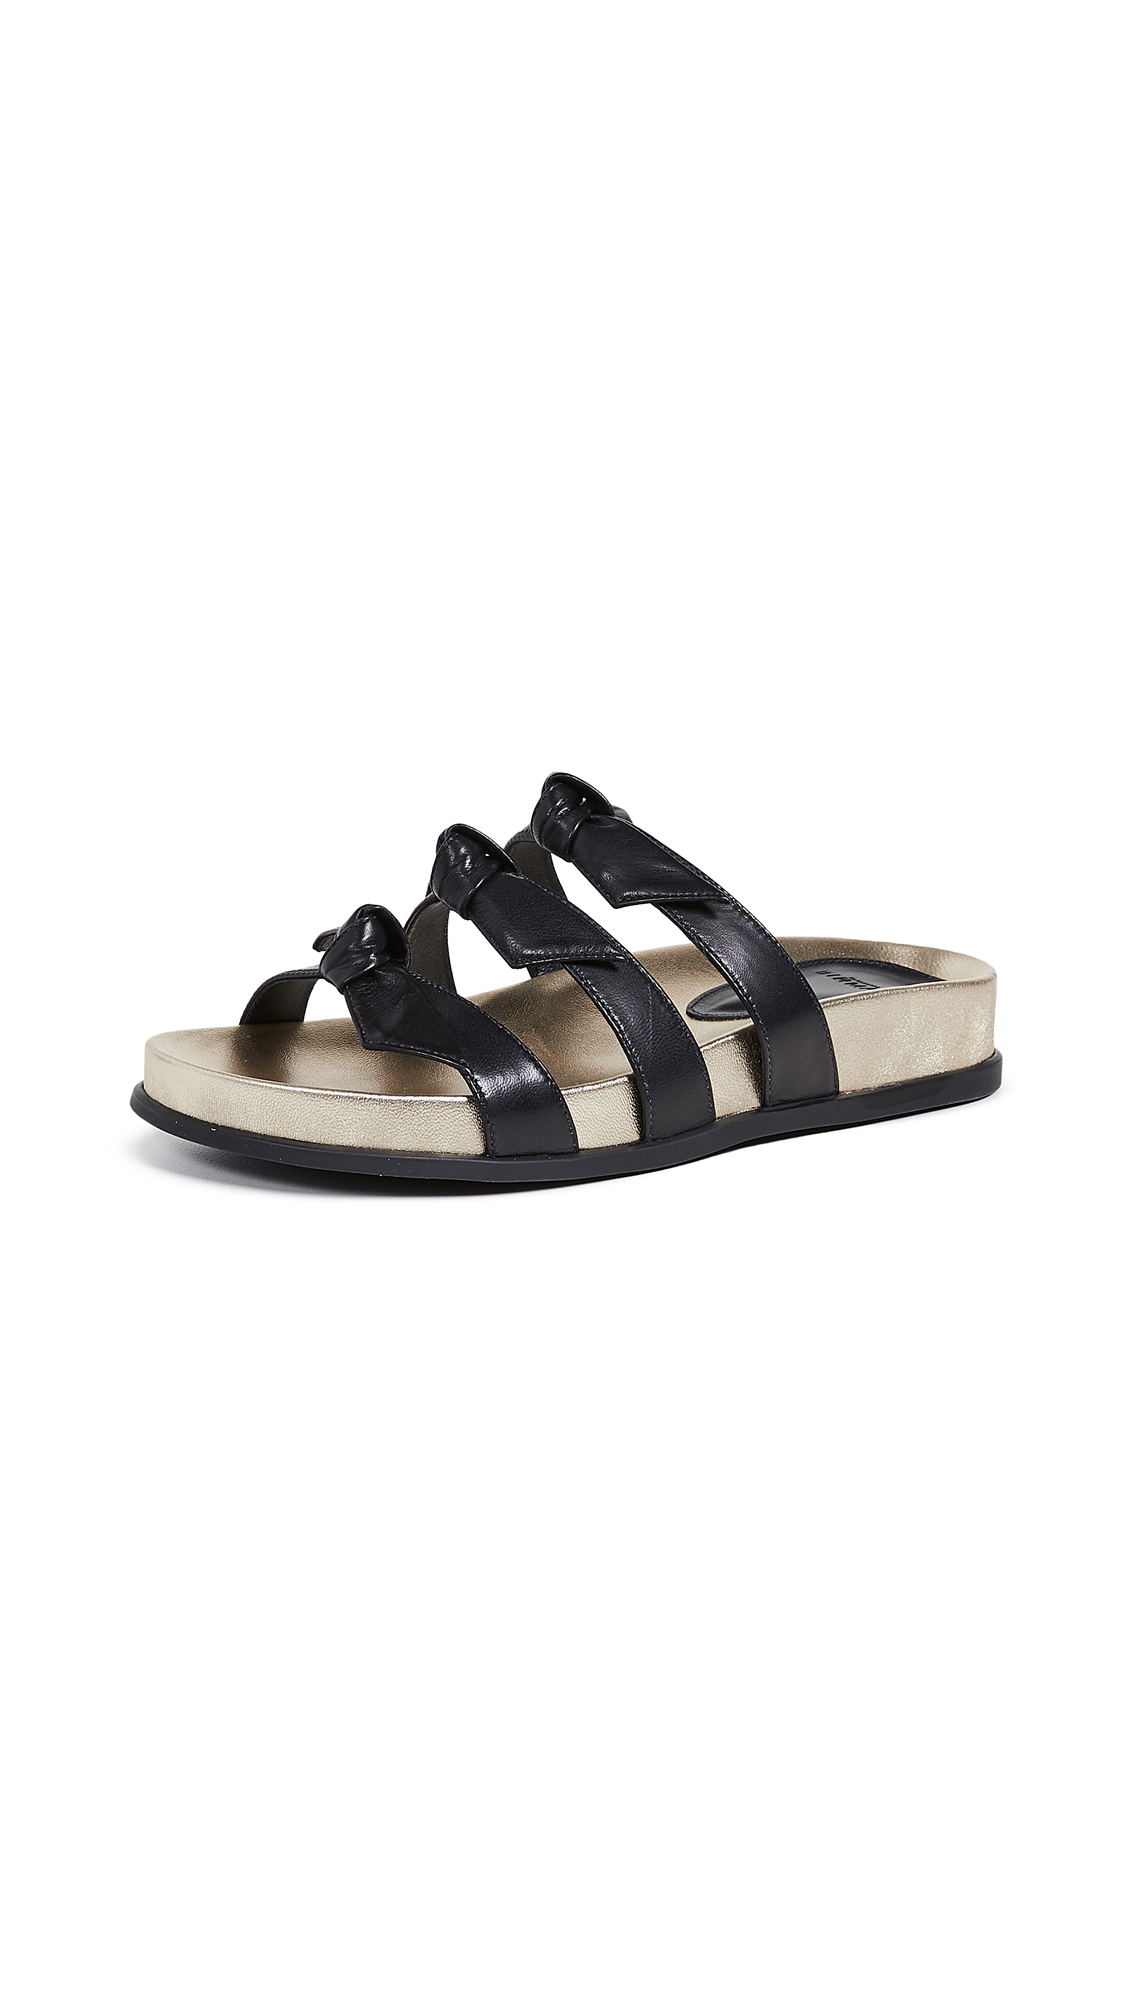 Alexandre Birman Lolita Pool Slides - Black/Golden